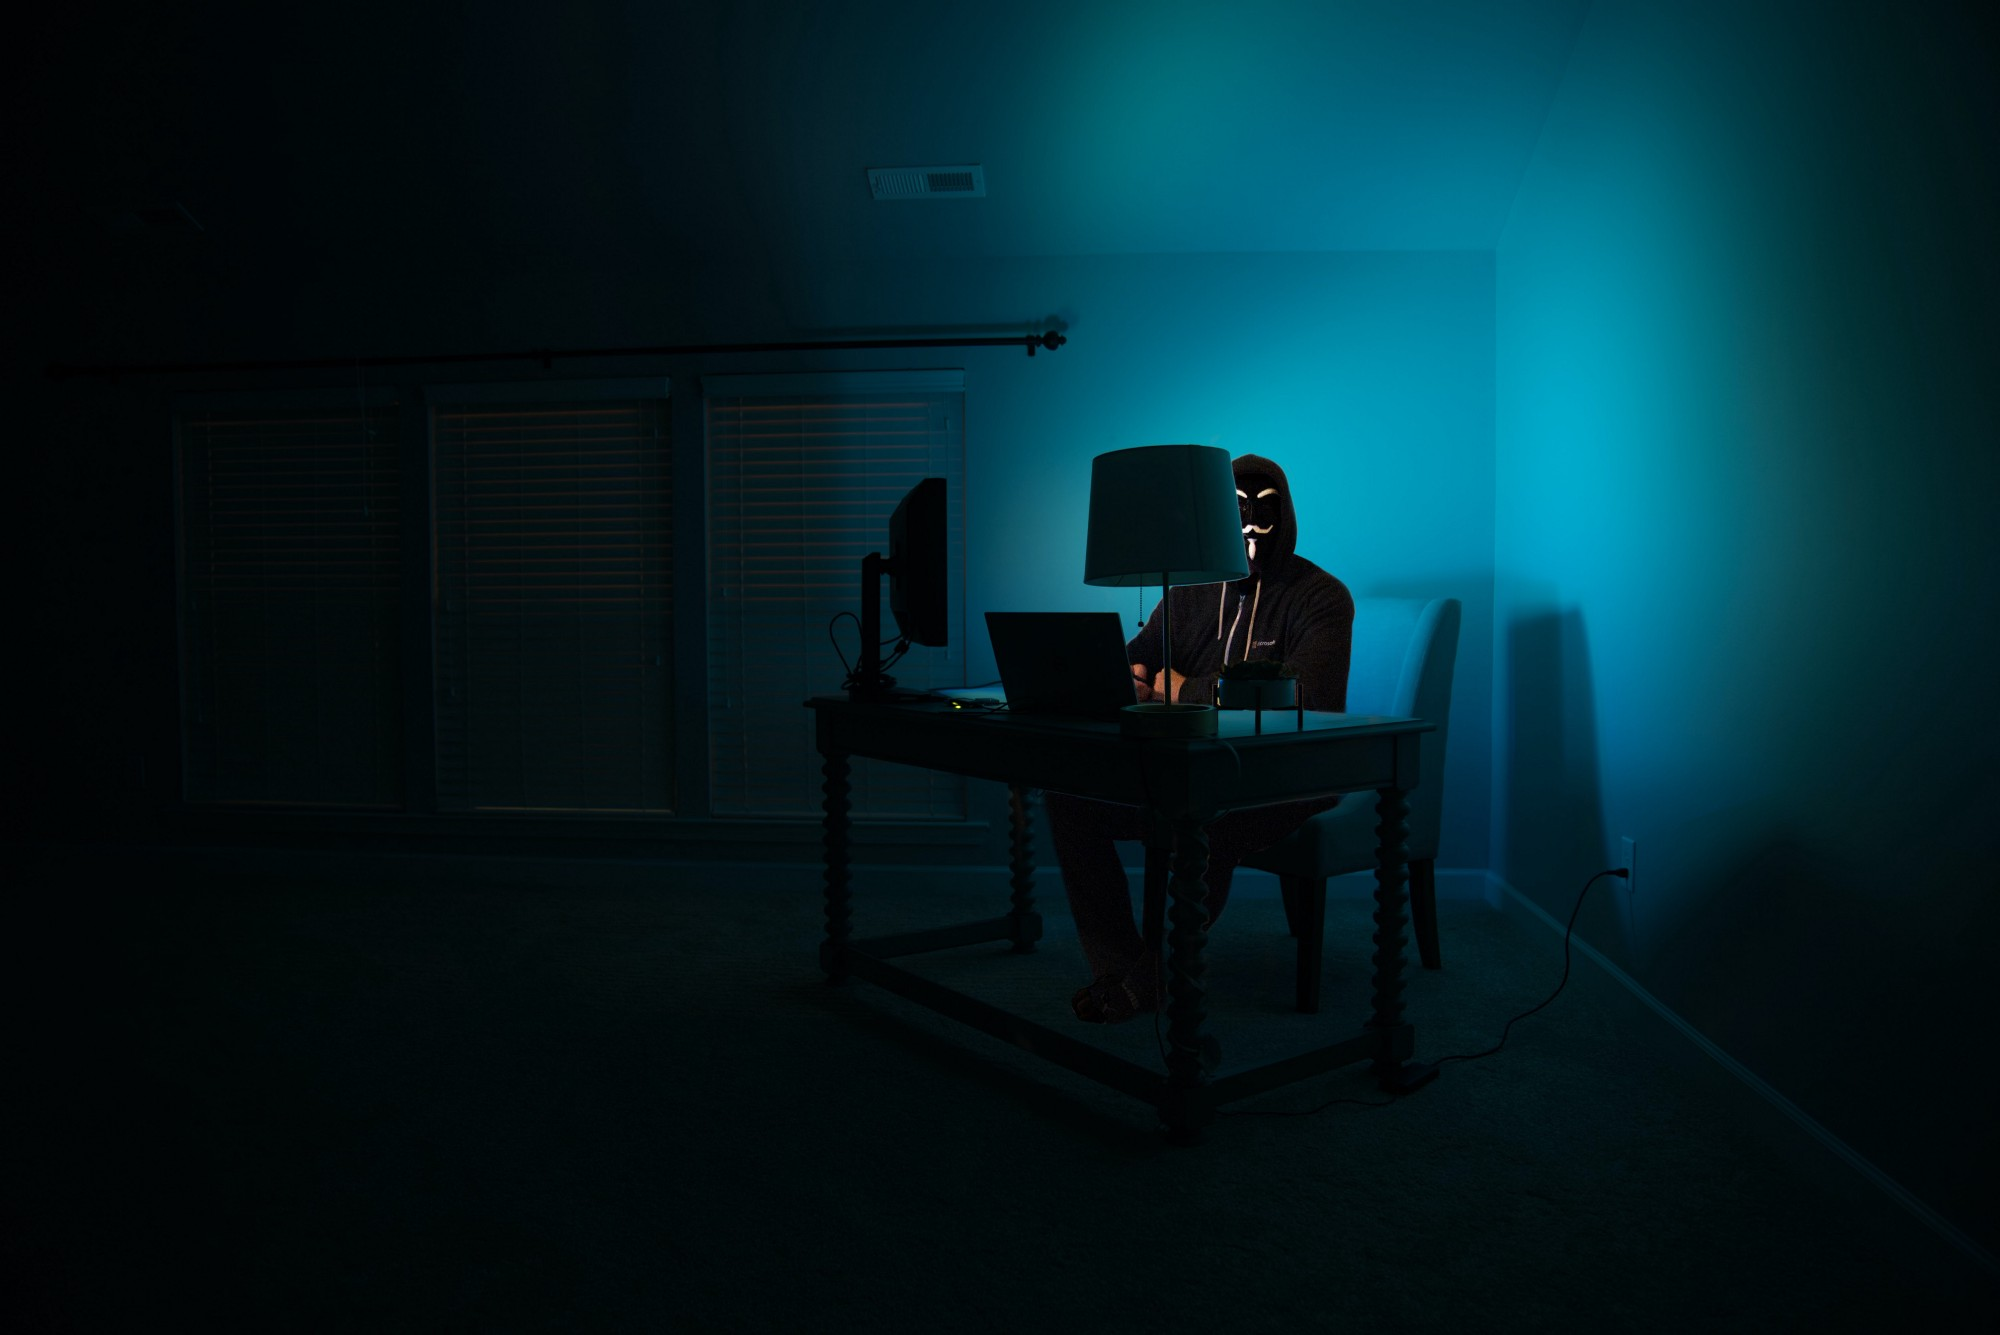 A man on his laptop, working at night.